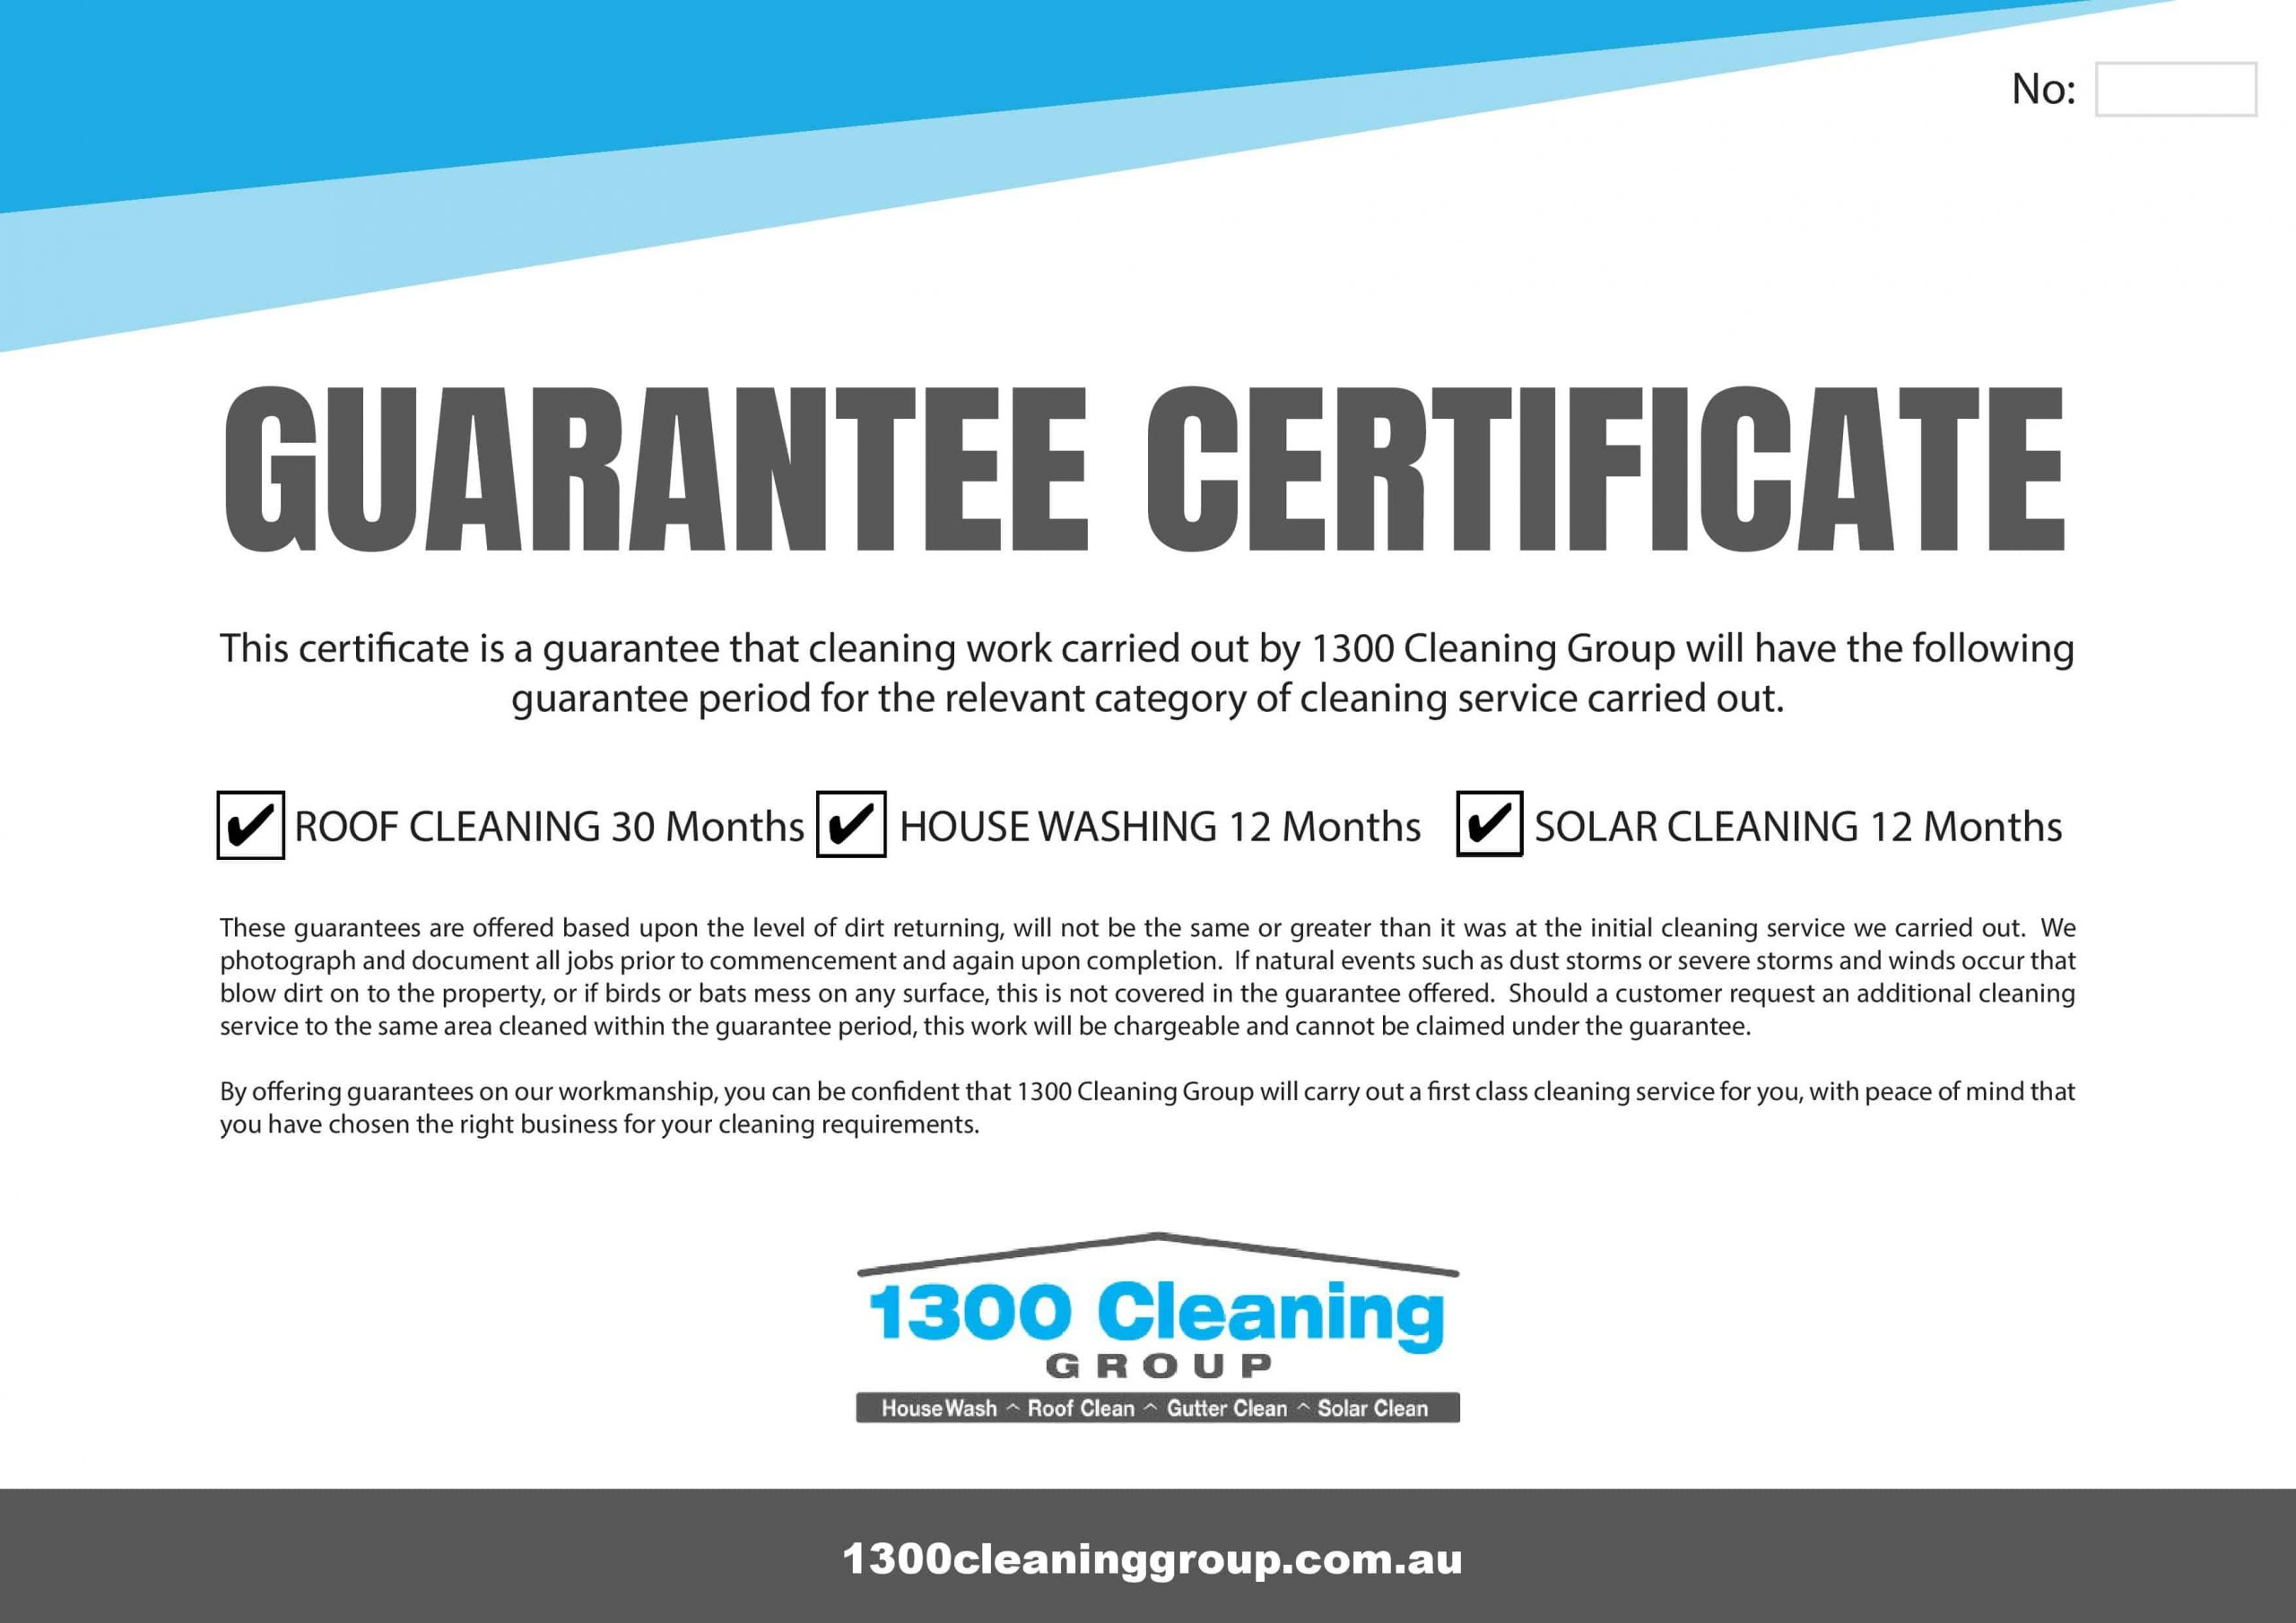 1300 Cleaning Group Warranty